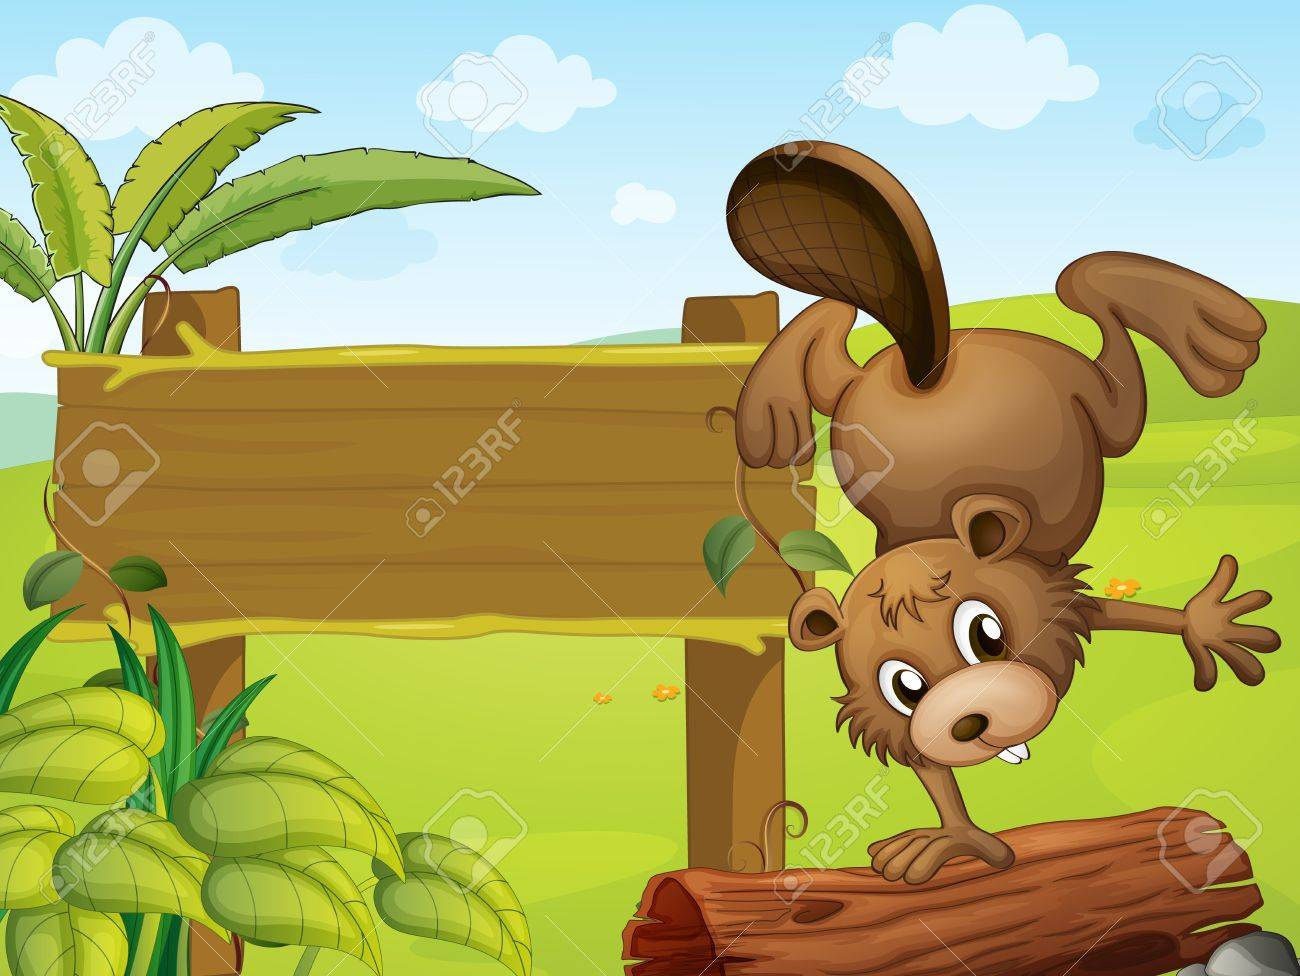 Illustration of a playful beaver Stock Vector - 17889604